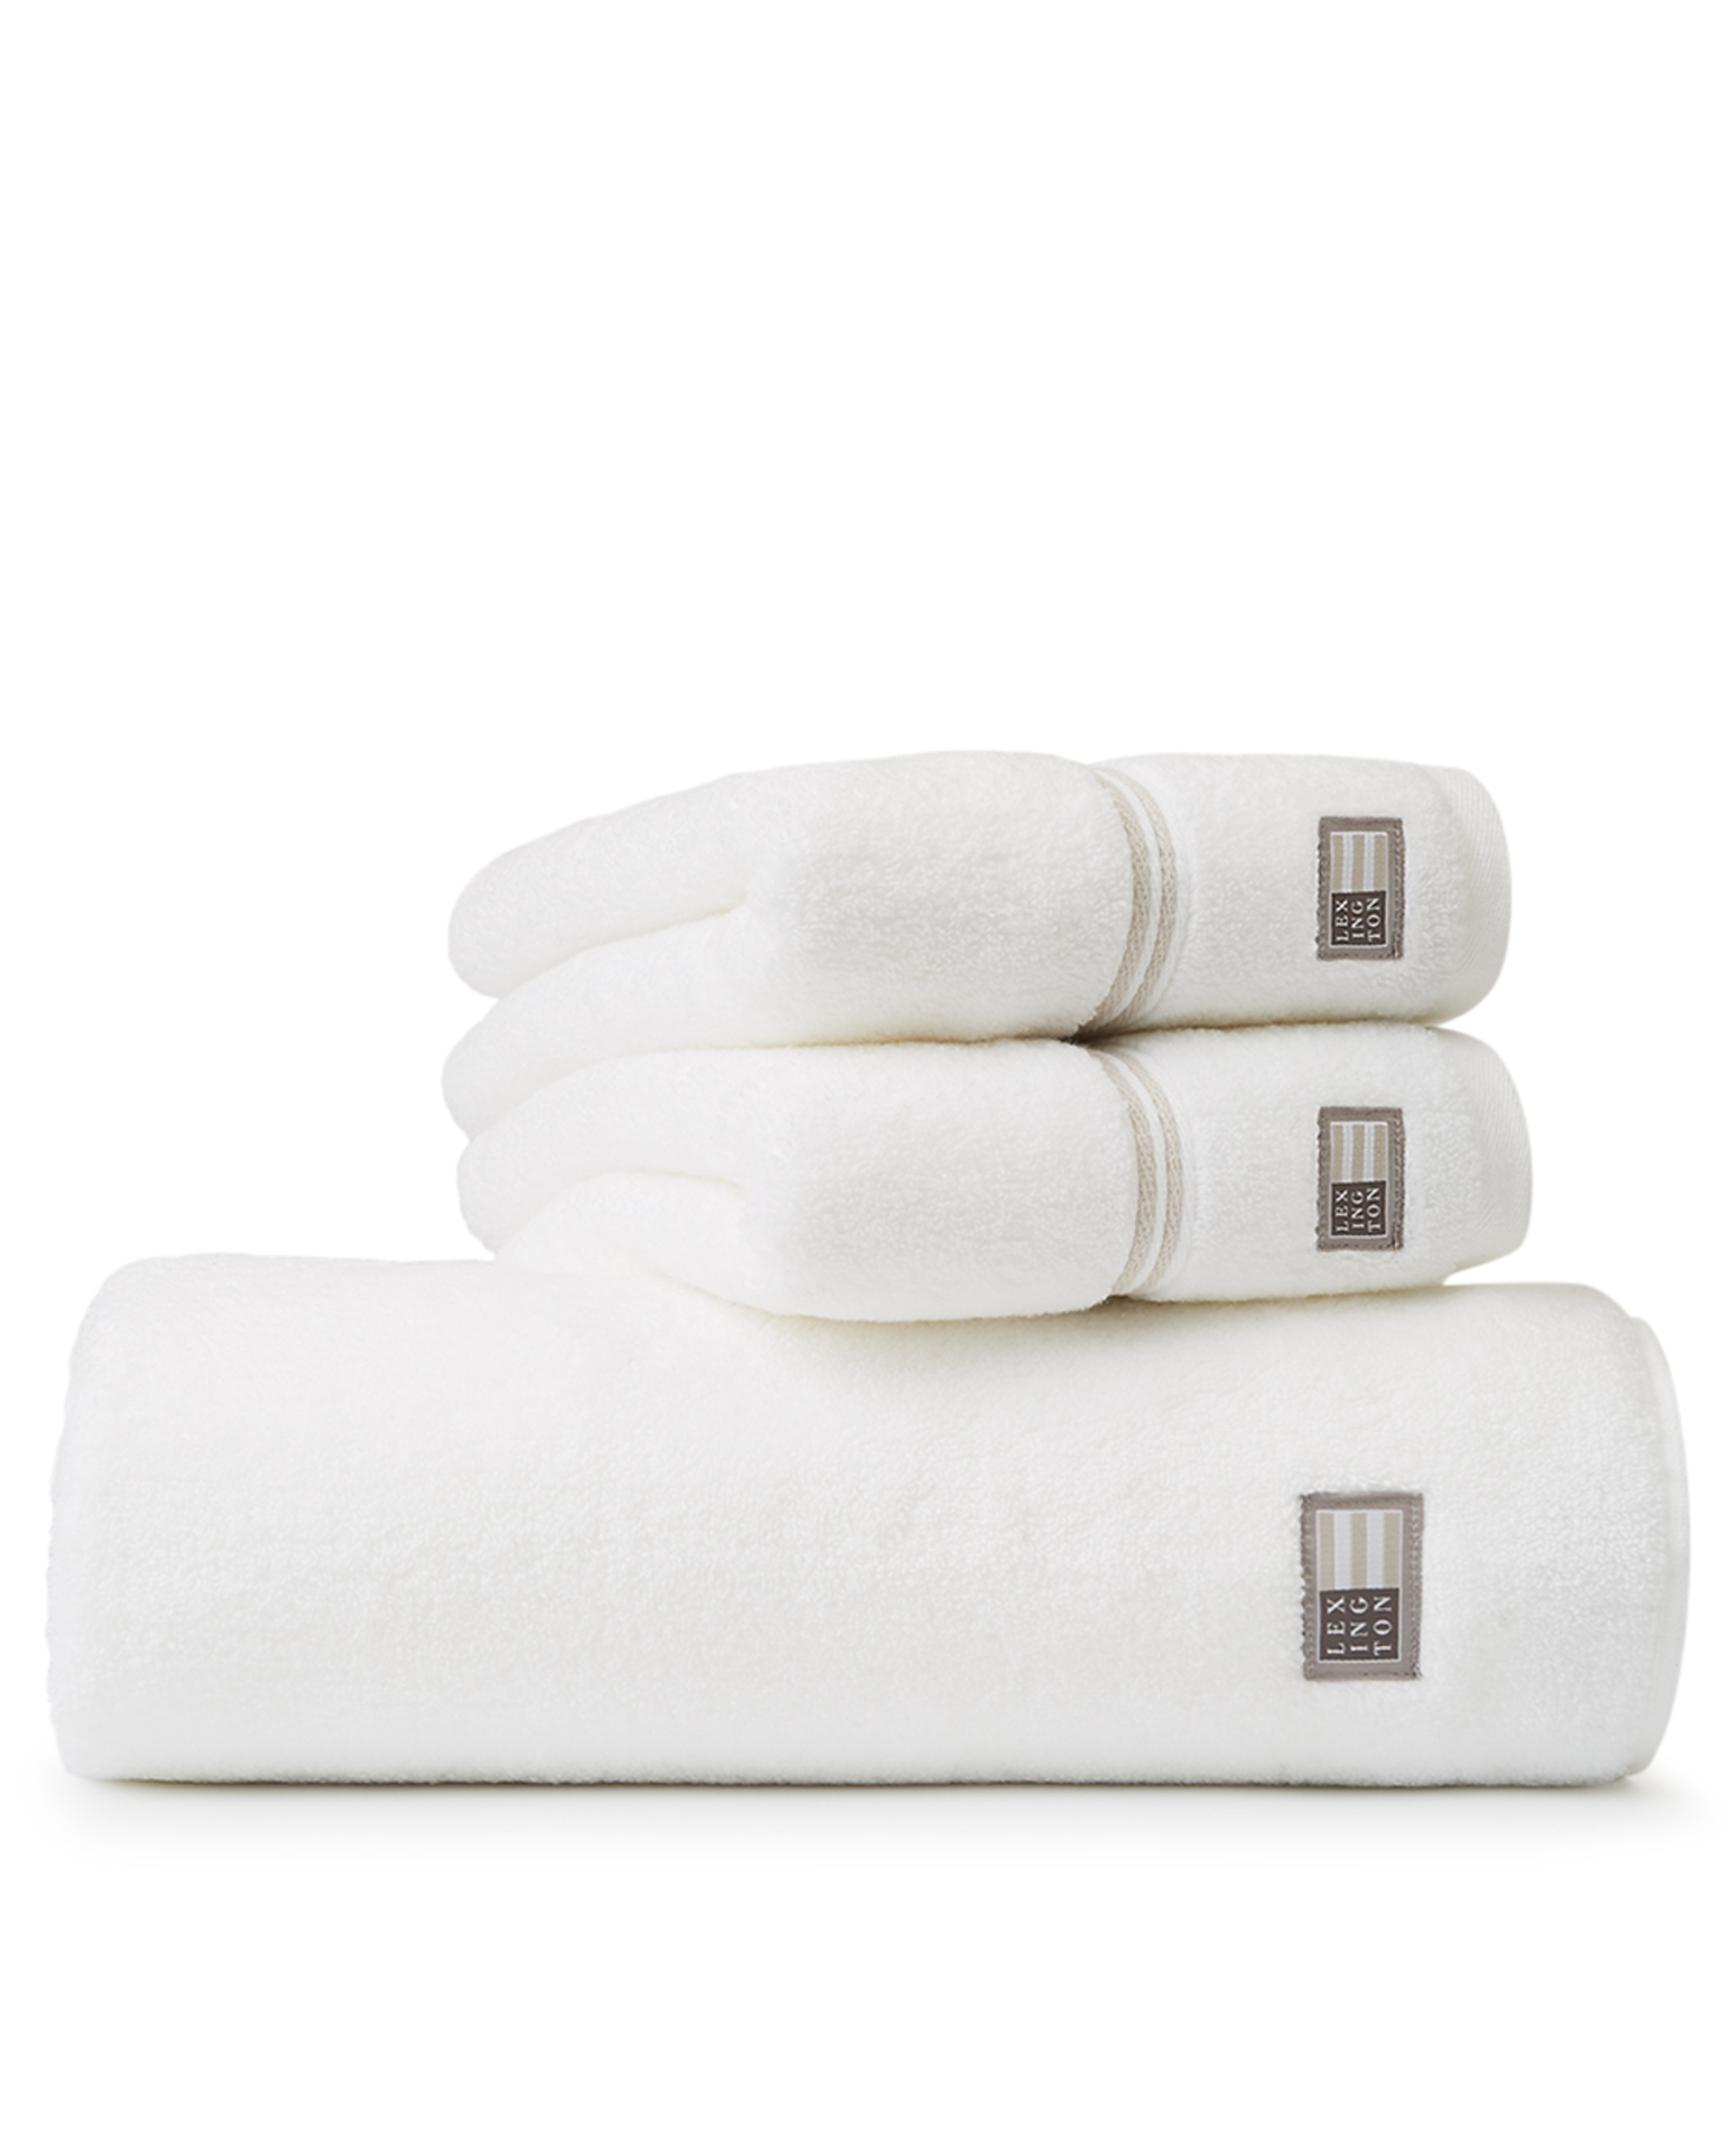 Lexington Hotel Towel White/Beige